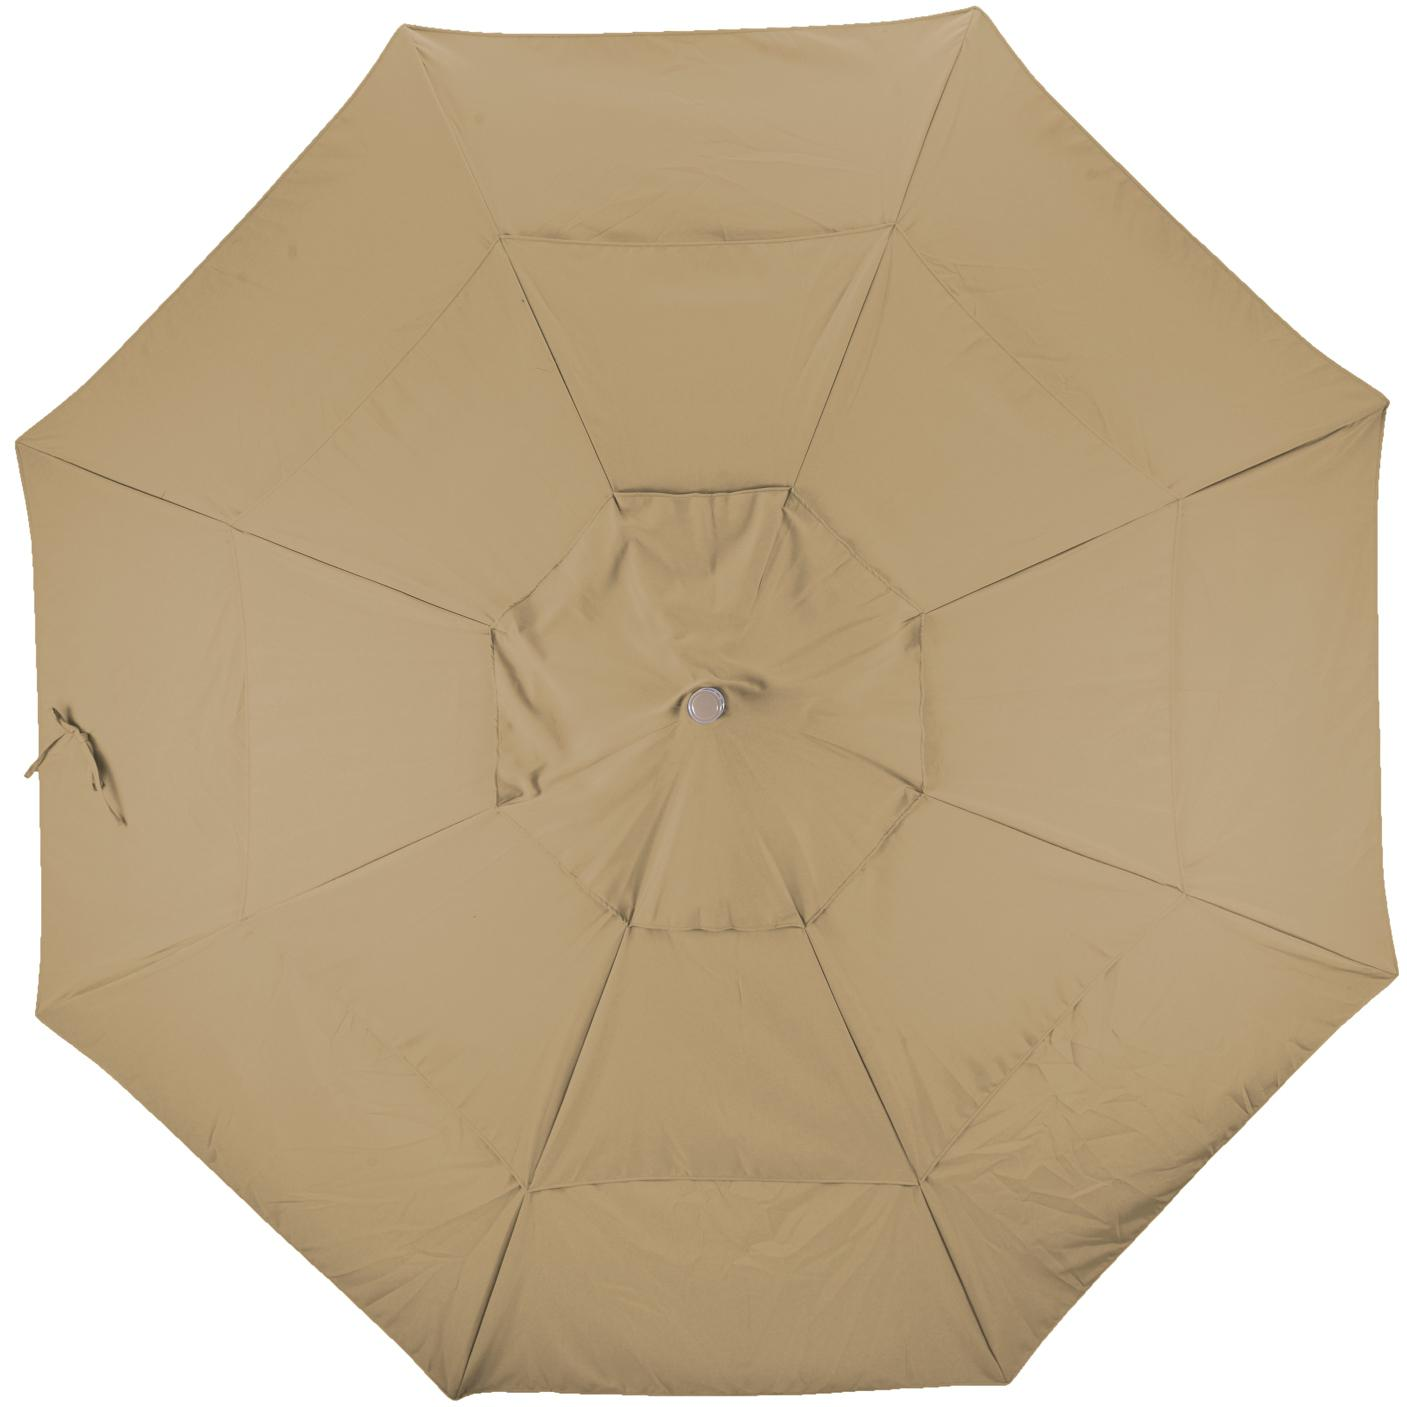 California Umbrella Sunbrella A Fabric In Heather Beige 2909698